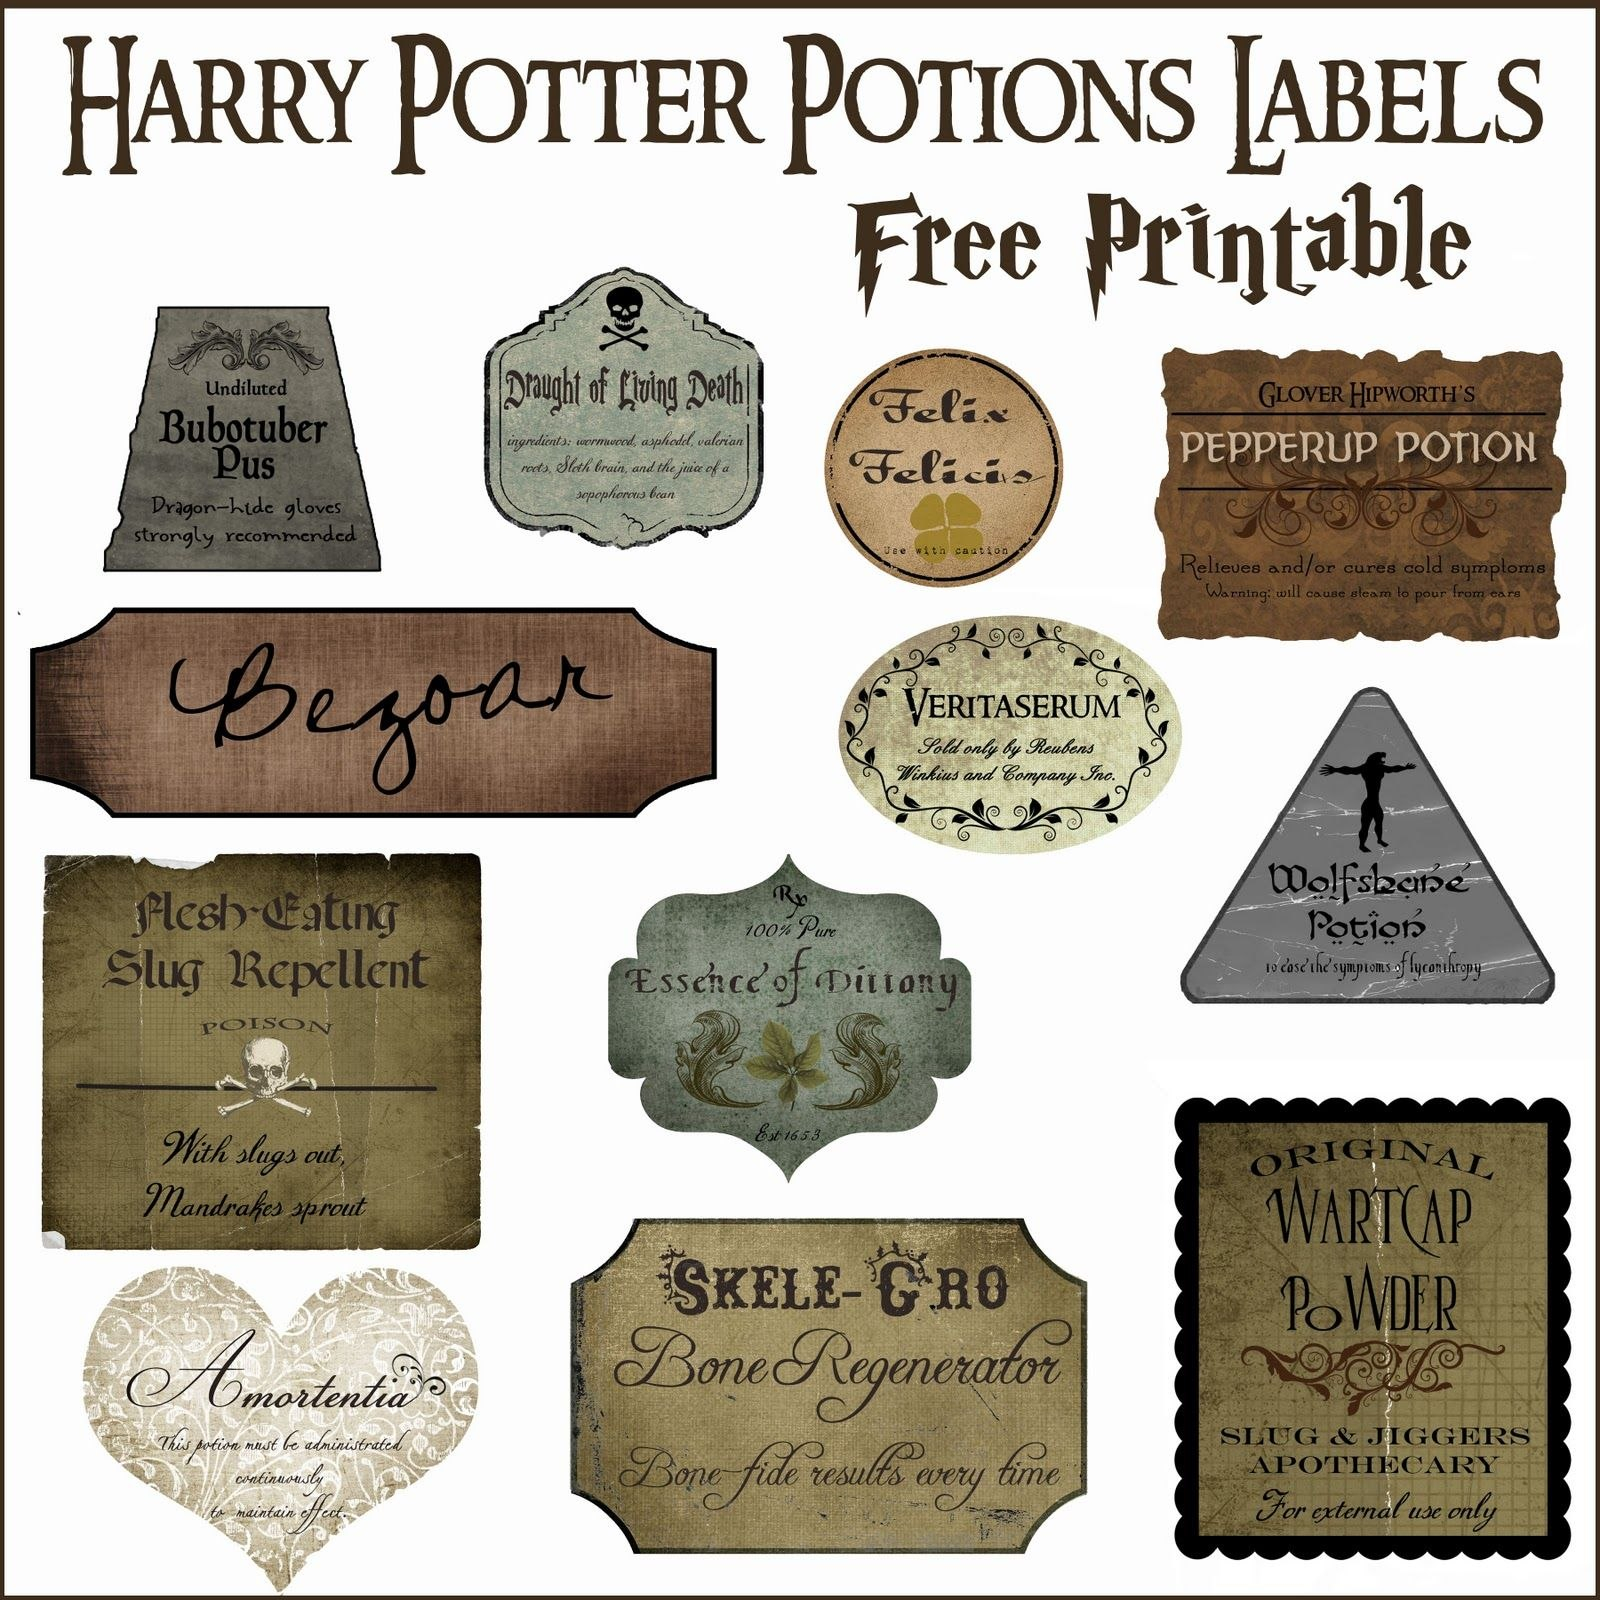 Harry Potter Potion Label Printables  Nerdy Stuff  Harry Potter Throughout Harry Potter Potion Labels Templates